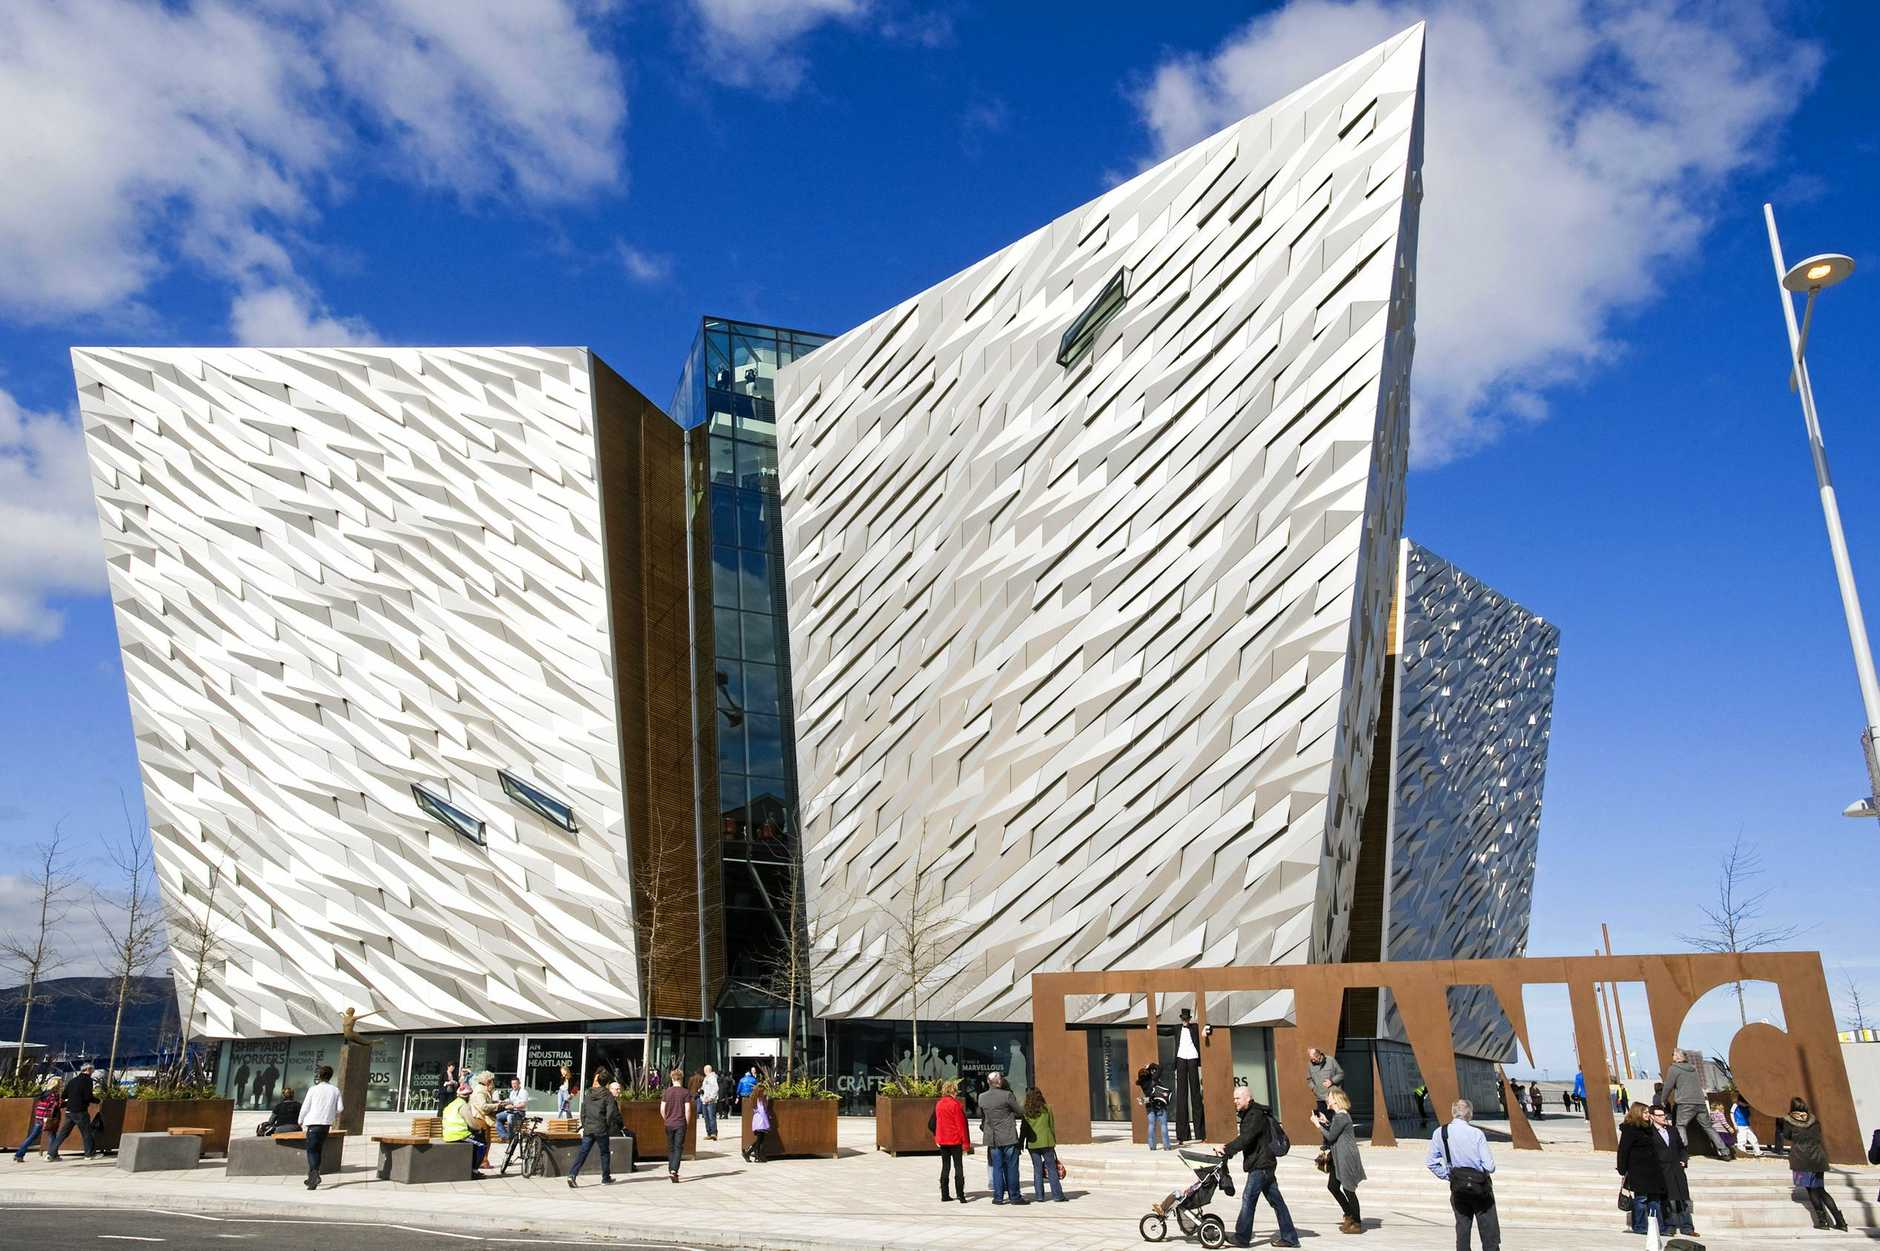 The Titanic Signature Building in Belfast.